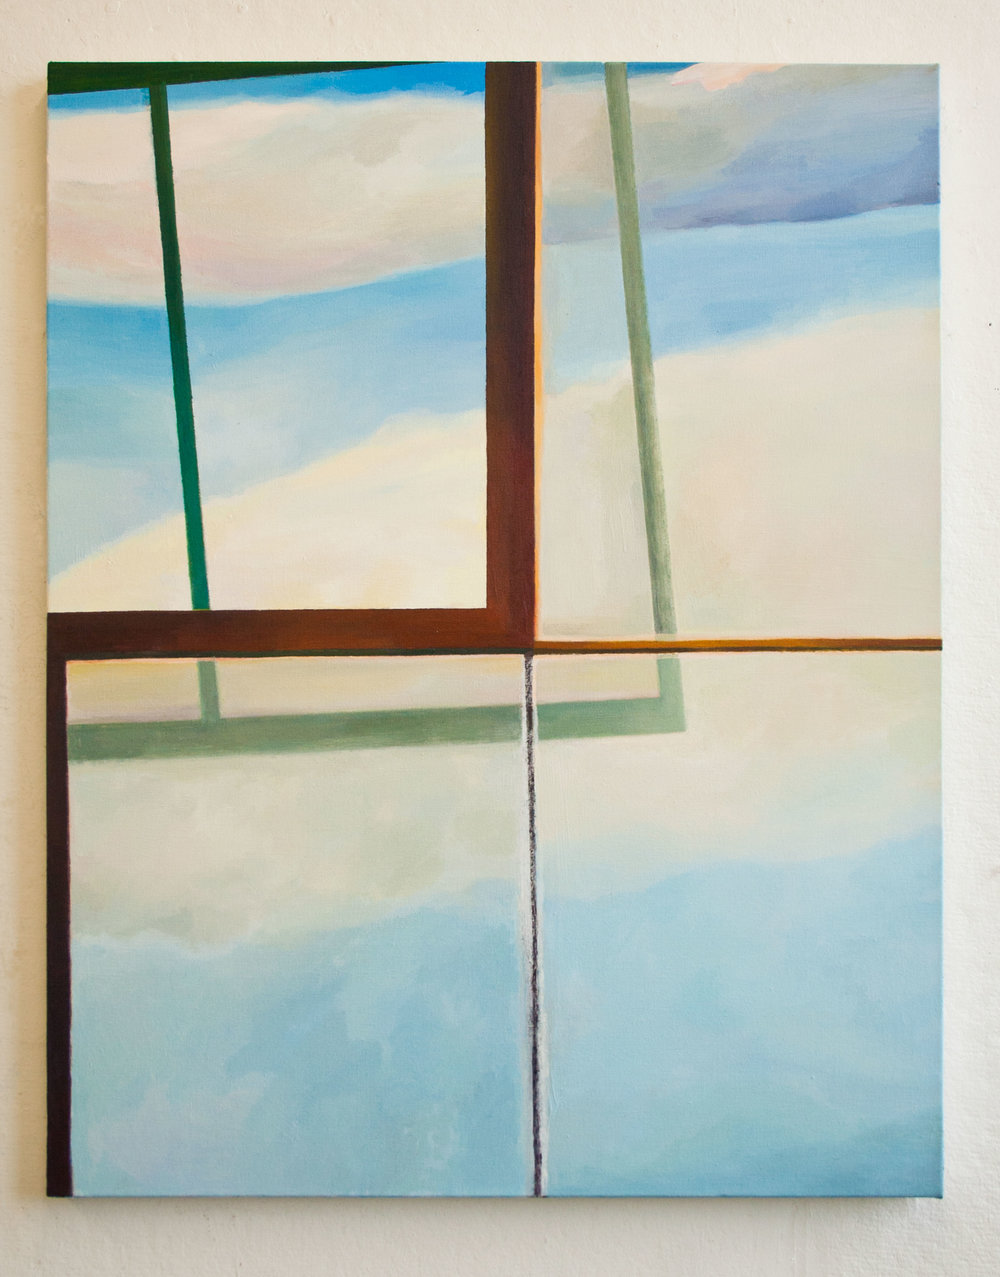 Opened lll, Oil on canvas, 43 x 34 inches, 2015